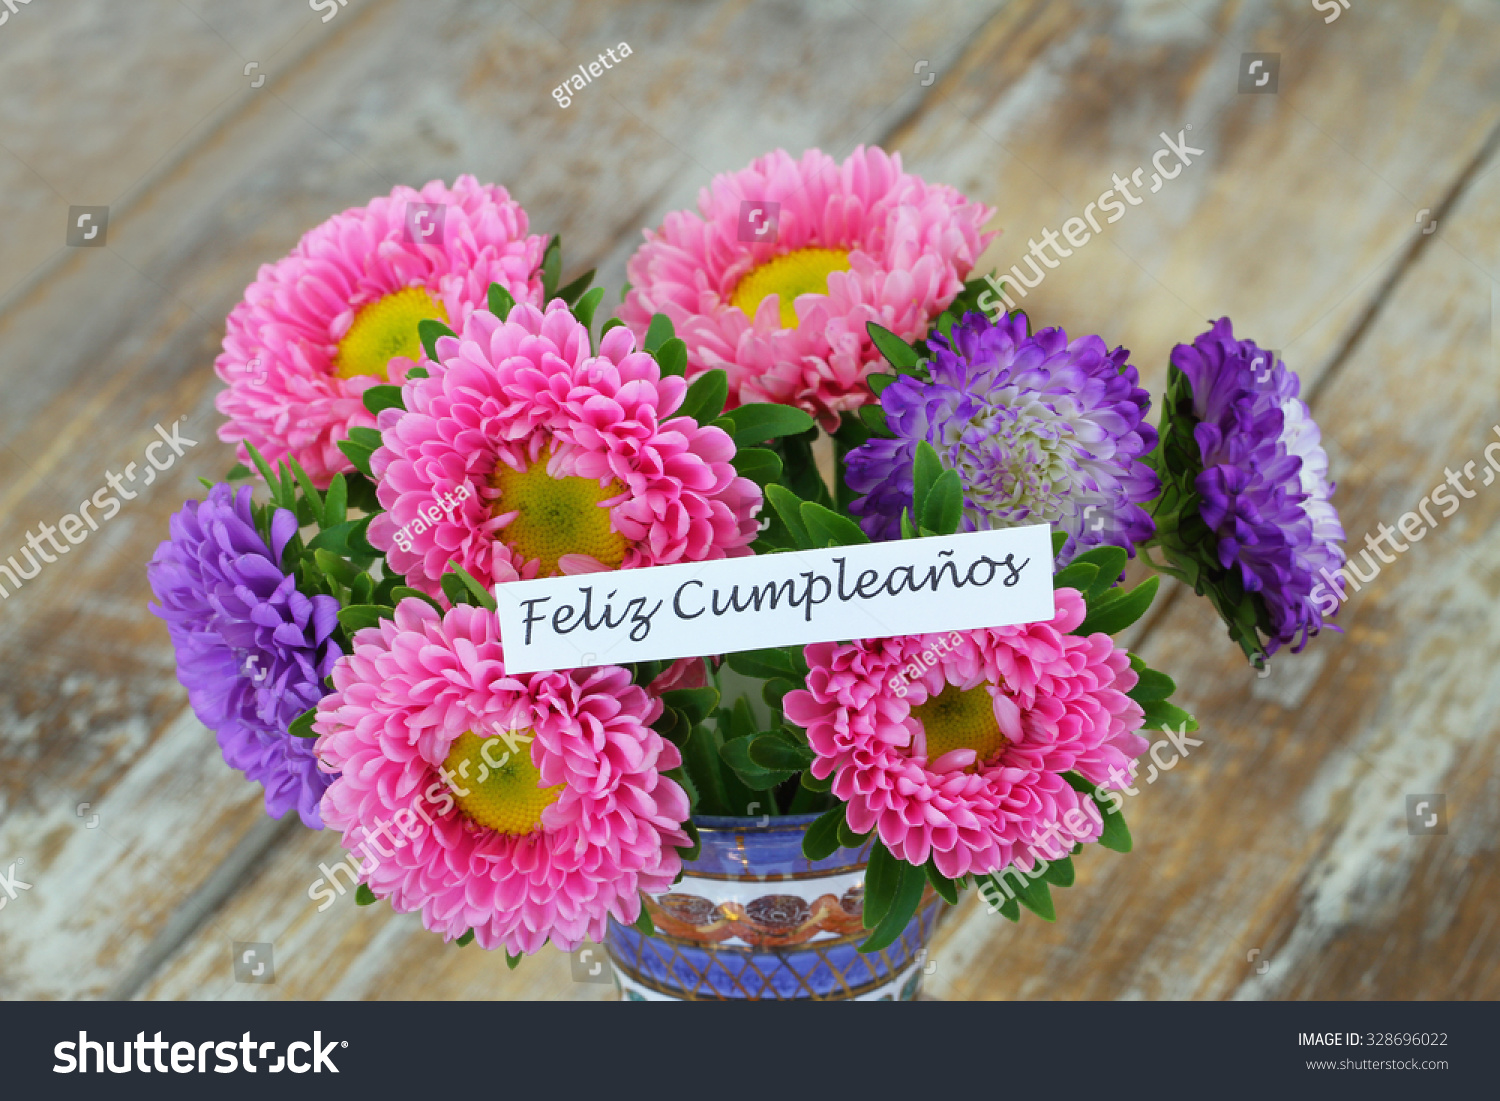 Feliz cumpleanos which means happy birthday stock photo edit now feliz cumpleanos which means happy birthday in spanish card with colorful daisy flower bouquet izmirmasajfo